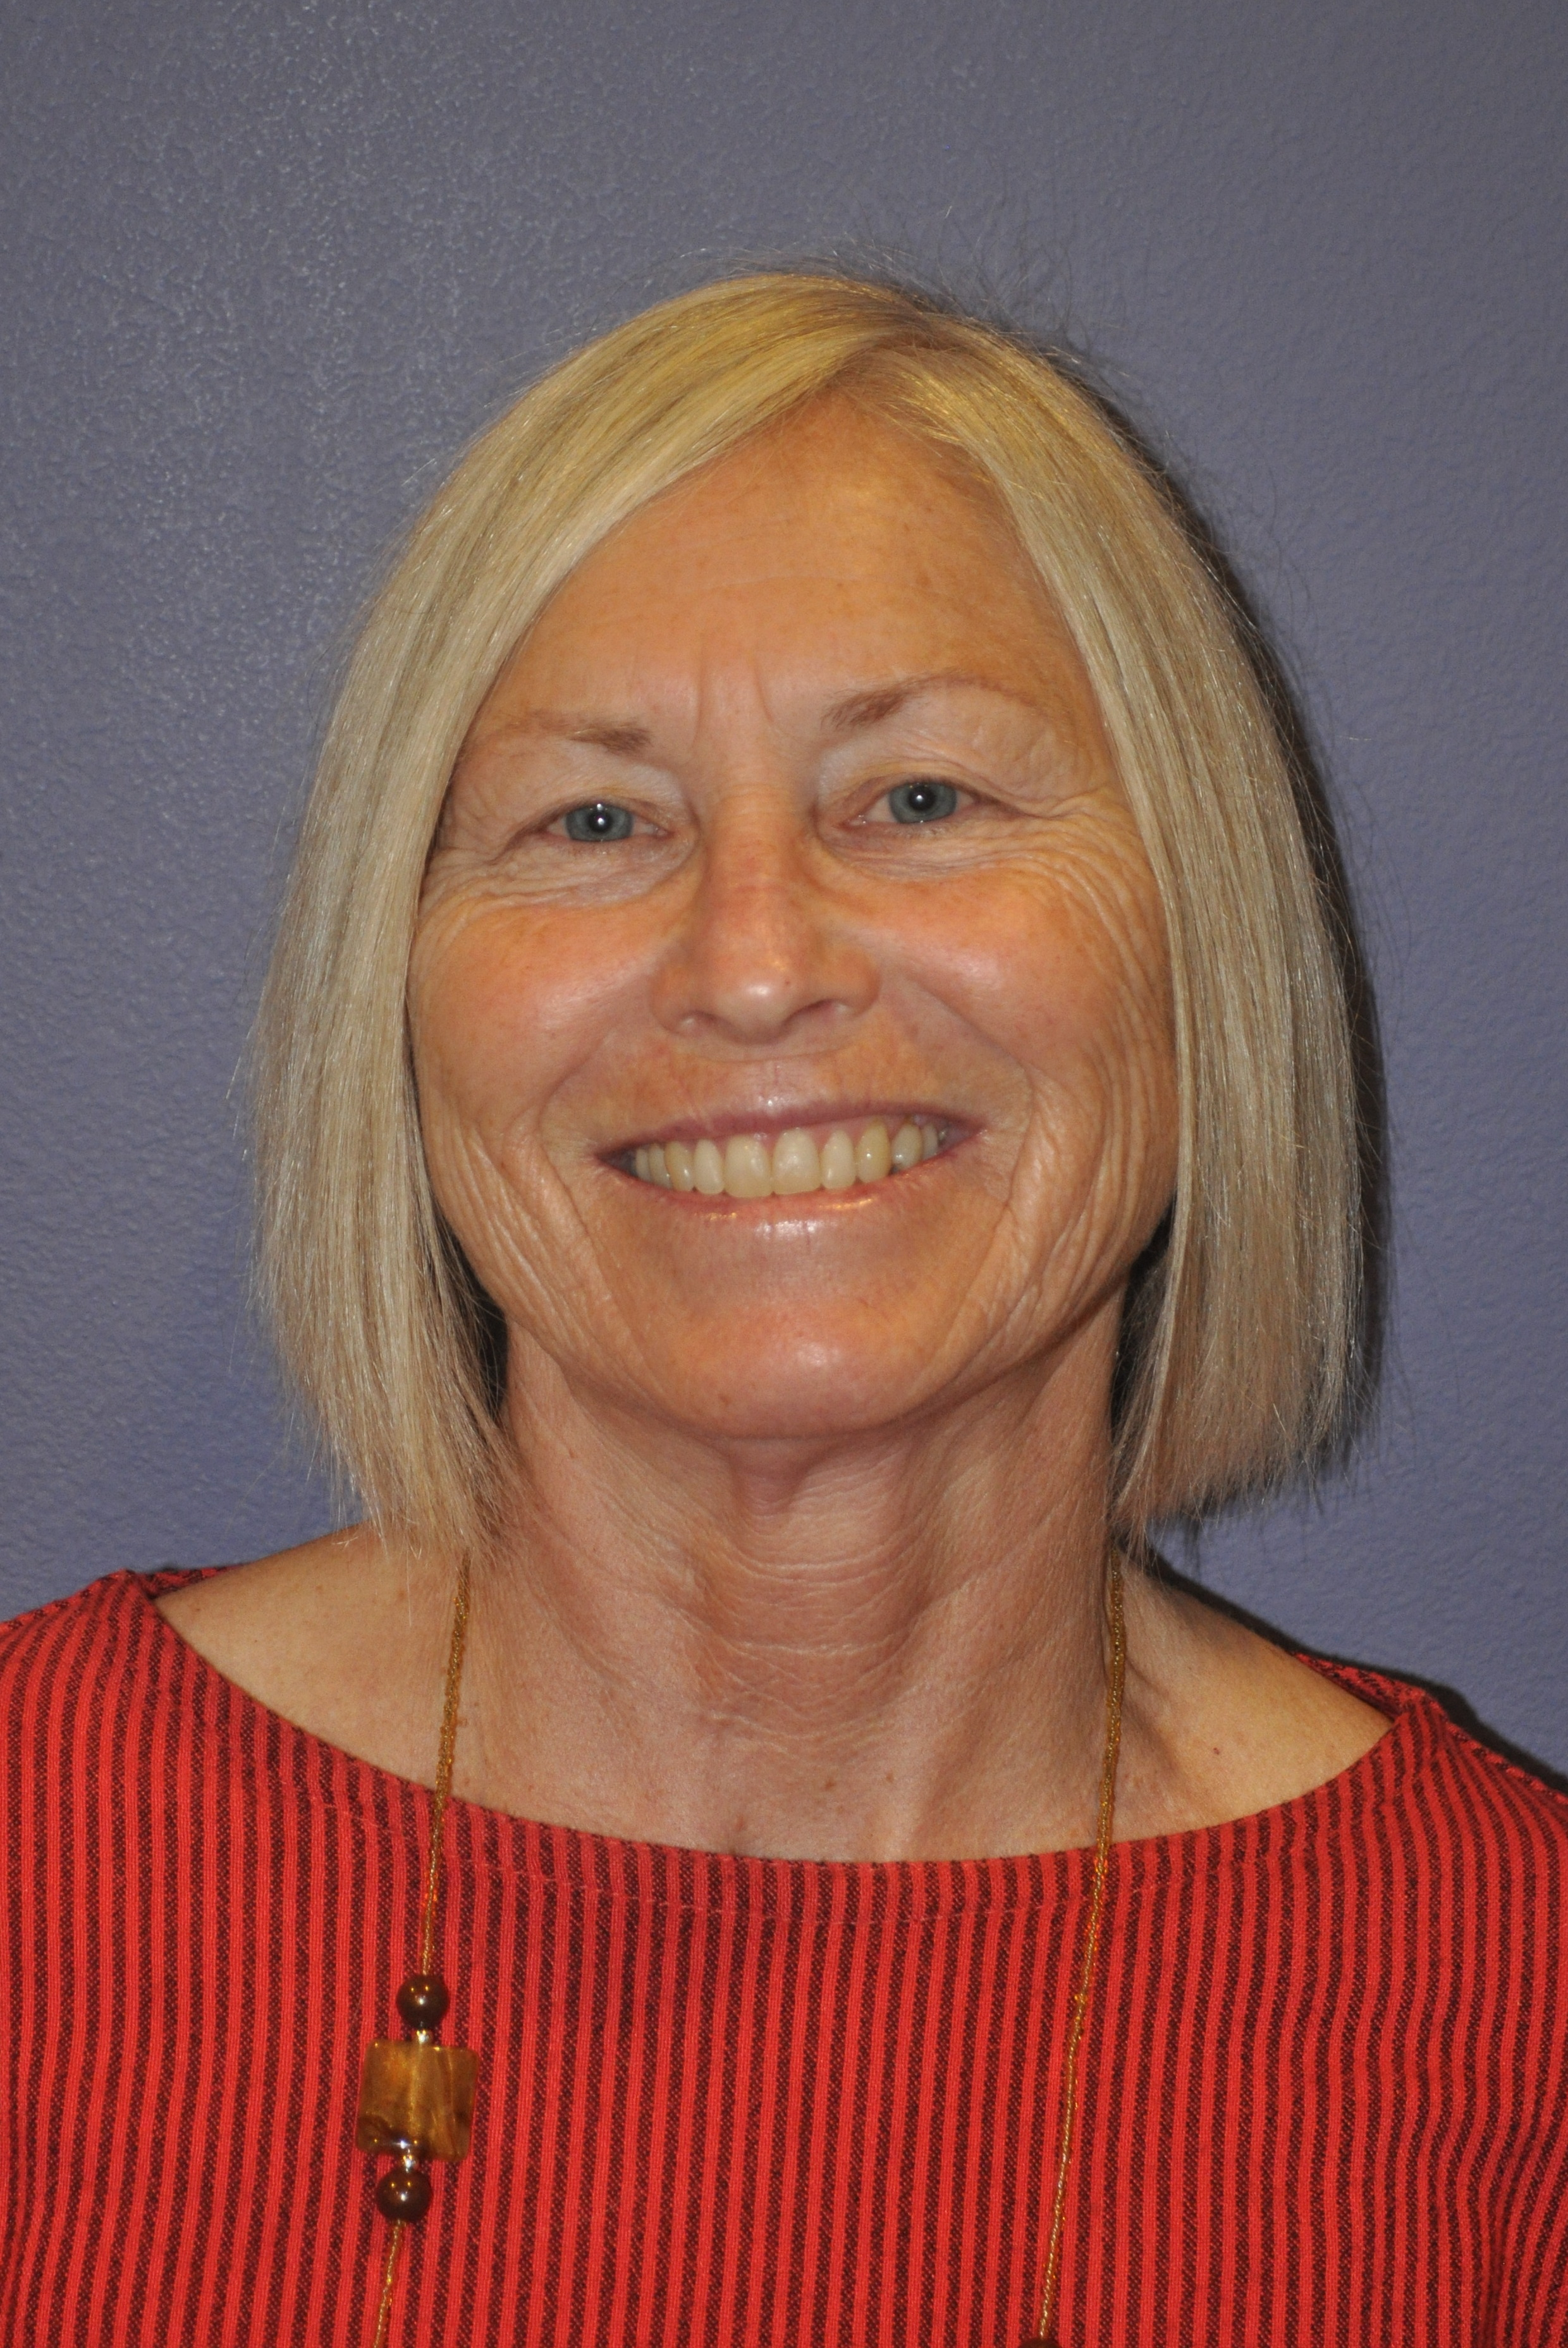 Gig harbor physical therapy - Physical Therapists Cheri J Grant M S